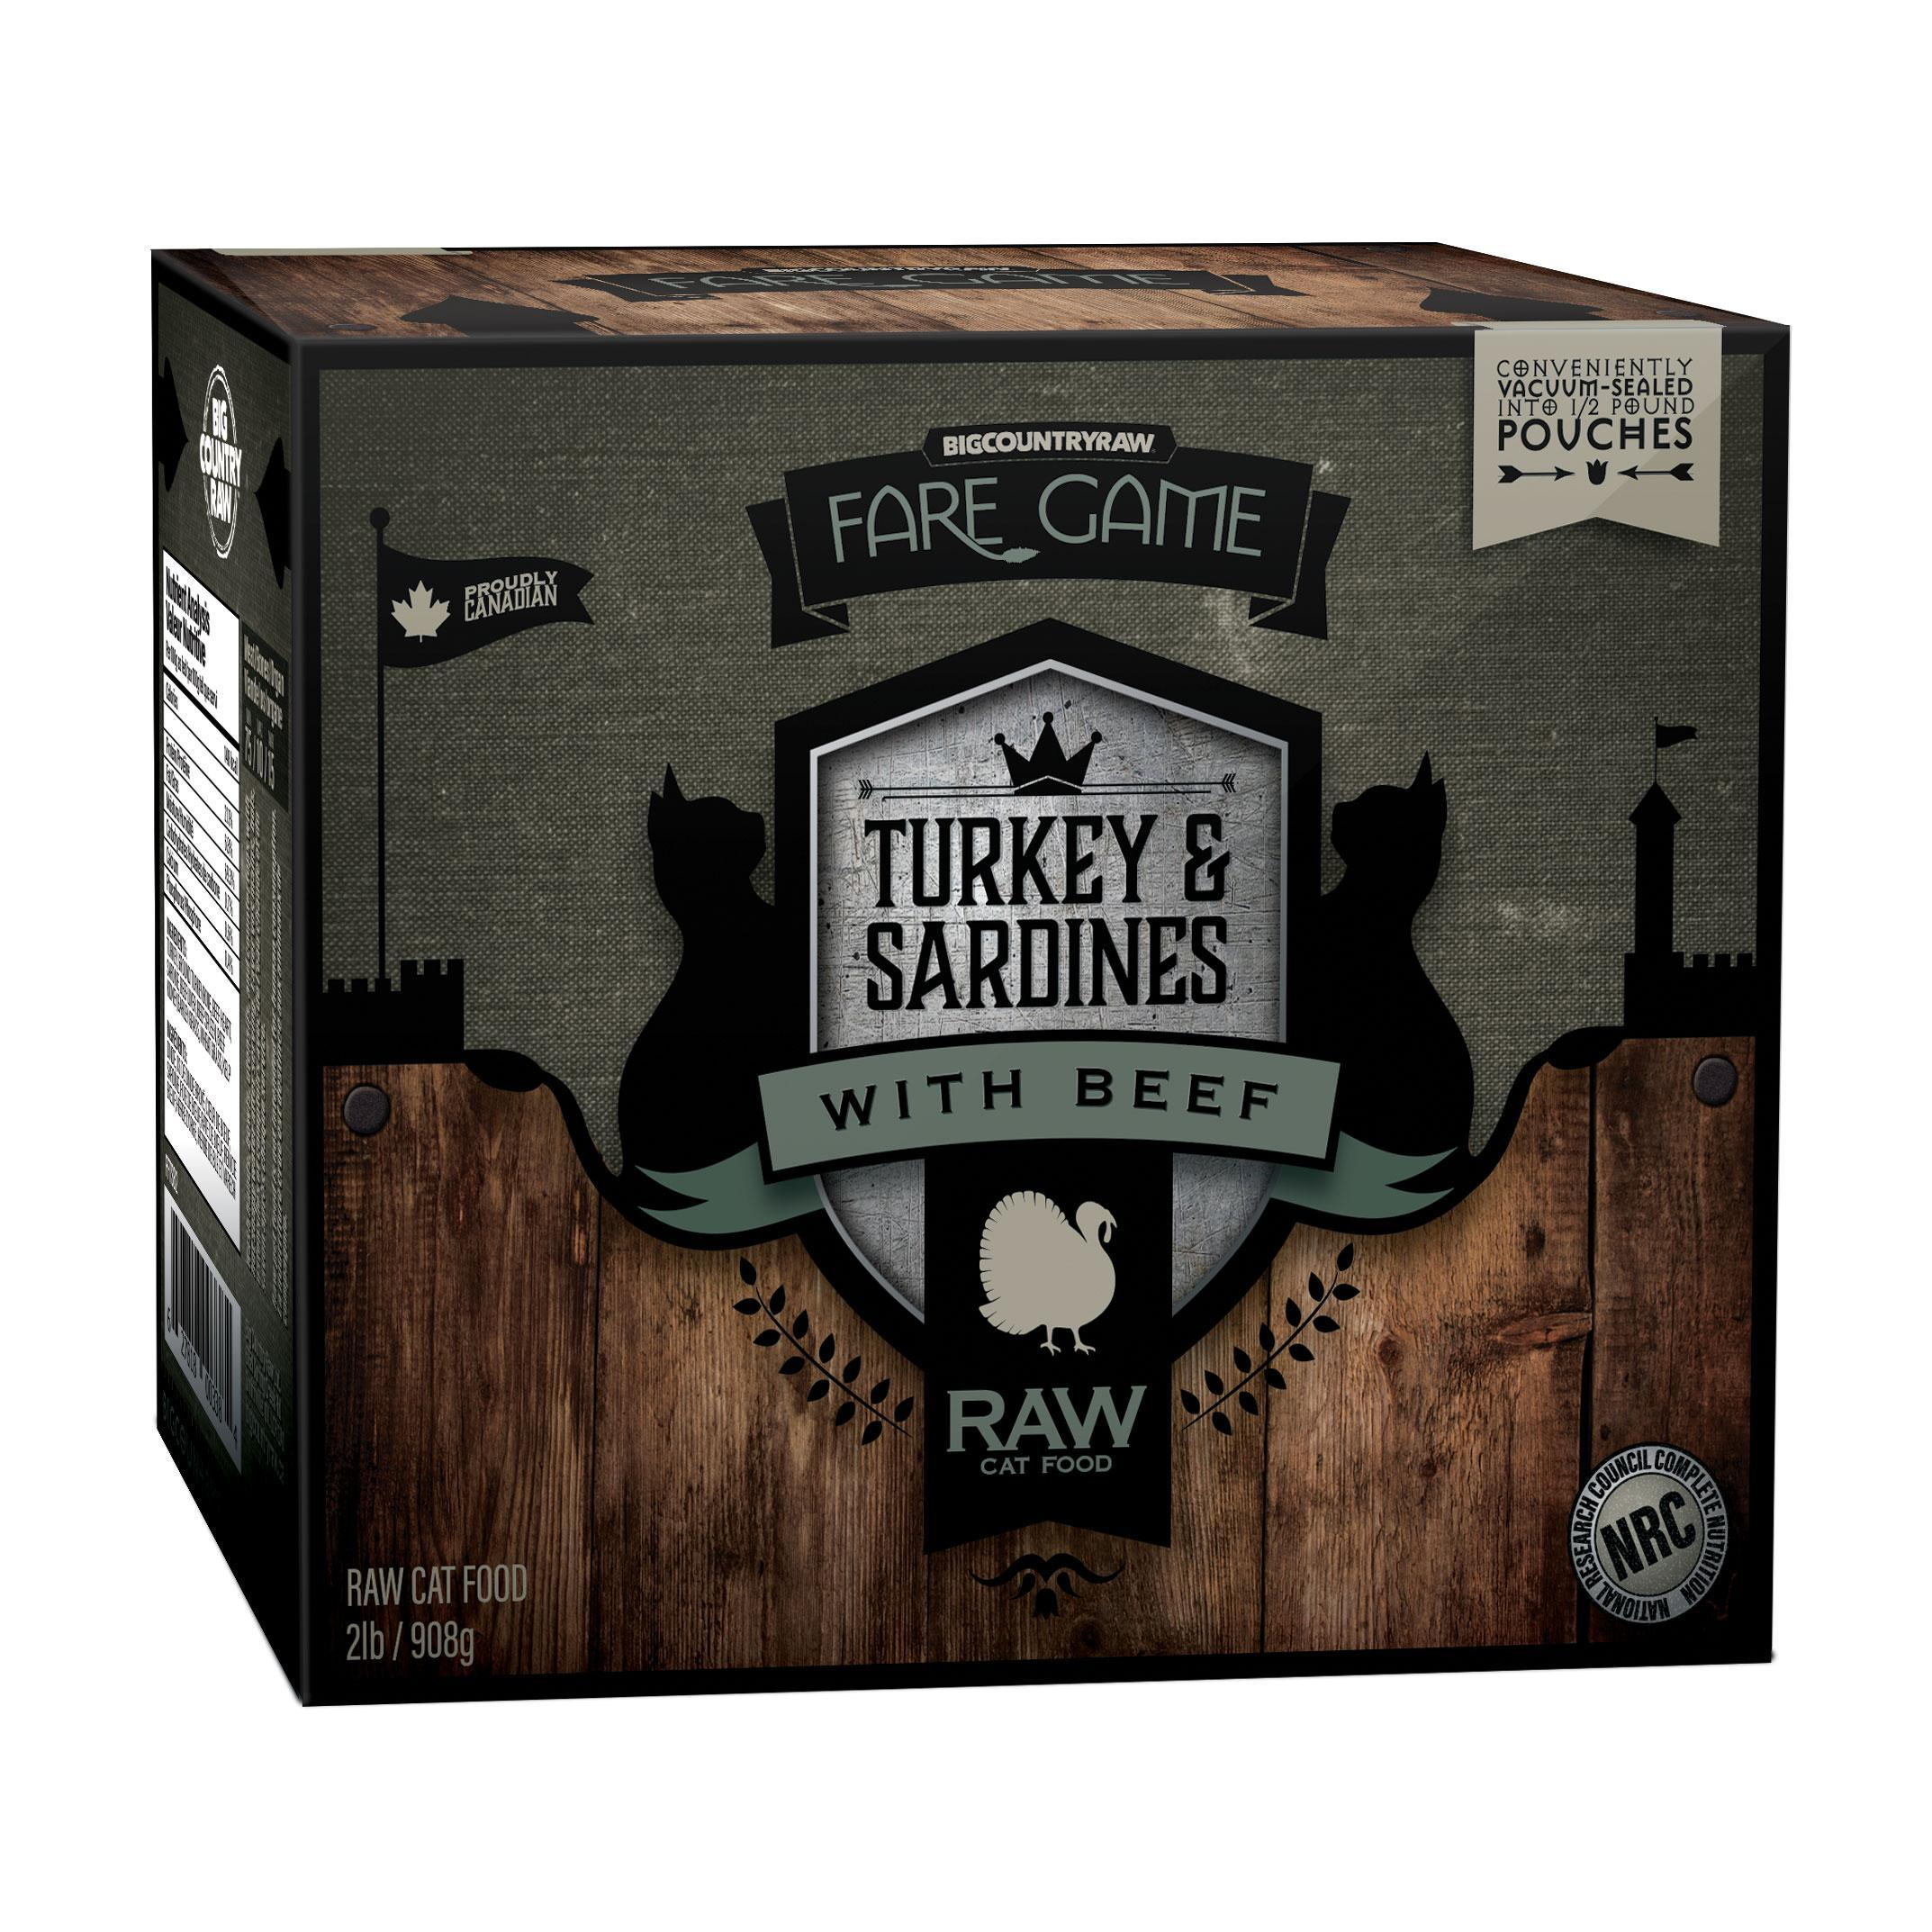 Big Country Raw Fare Game Turkey & Sardines with Beef Raw Frozen Cat Food, 2-lb